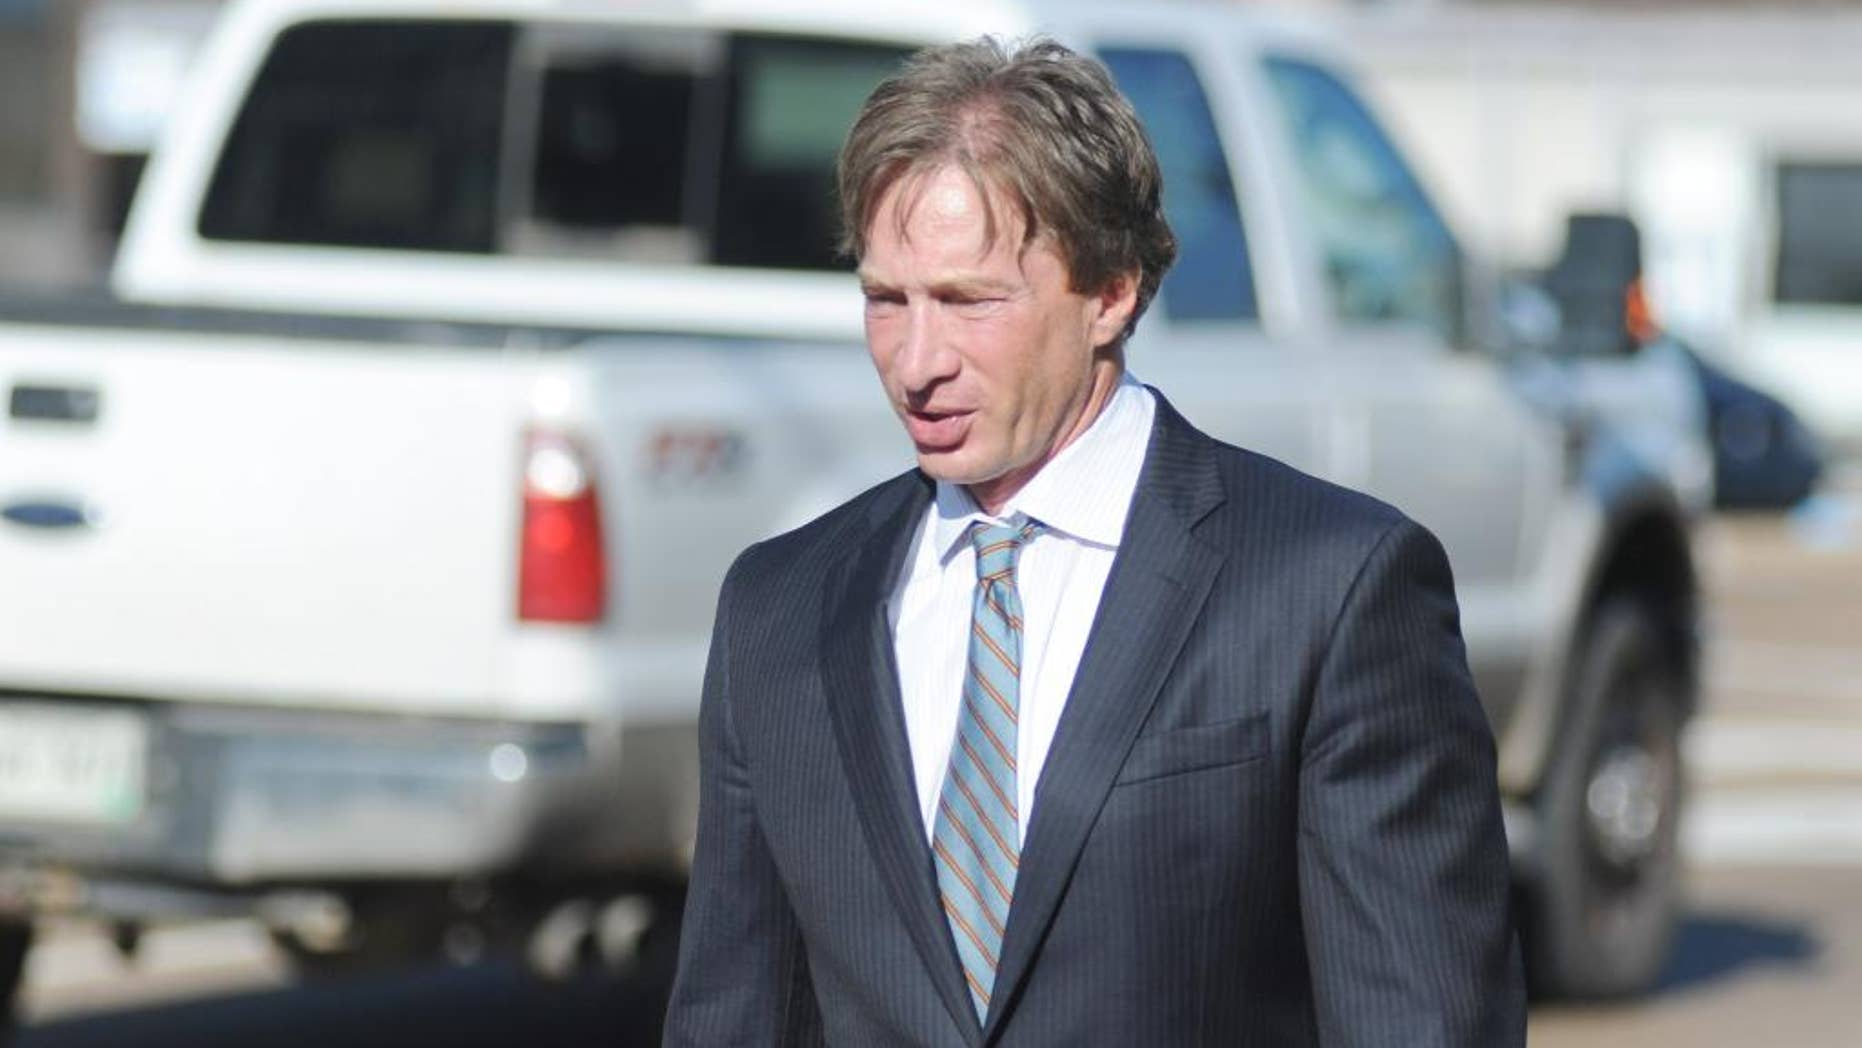 Attorney Ken Coghlan, representing Jaelyn Delshaun Young, enters federal court for a hearing in Oxford, Miss. on Tuesday, Aug. 11, 2015. Young, and Muhammad Oda Dakhlalla, were arrested over the weekend on charges that they were trying to travel abroad to join the Islamic State militant group. (Bruce Newman/Oxford Eagle via AP)